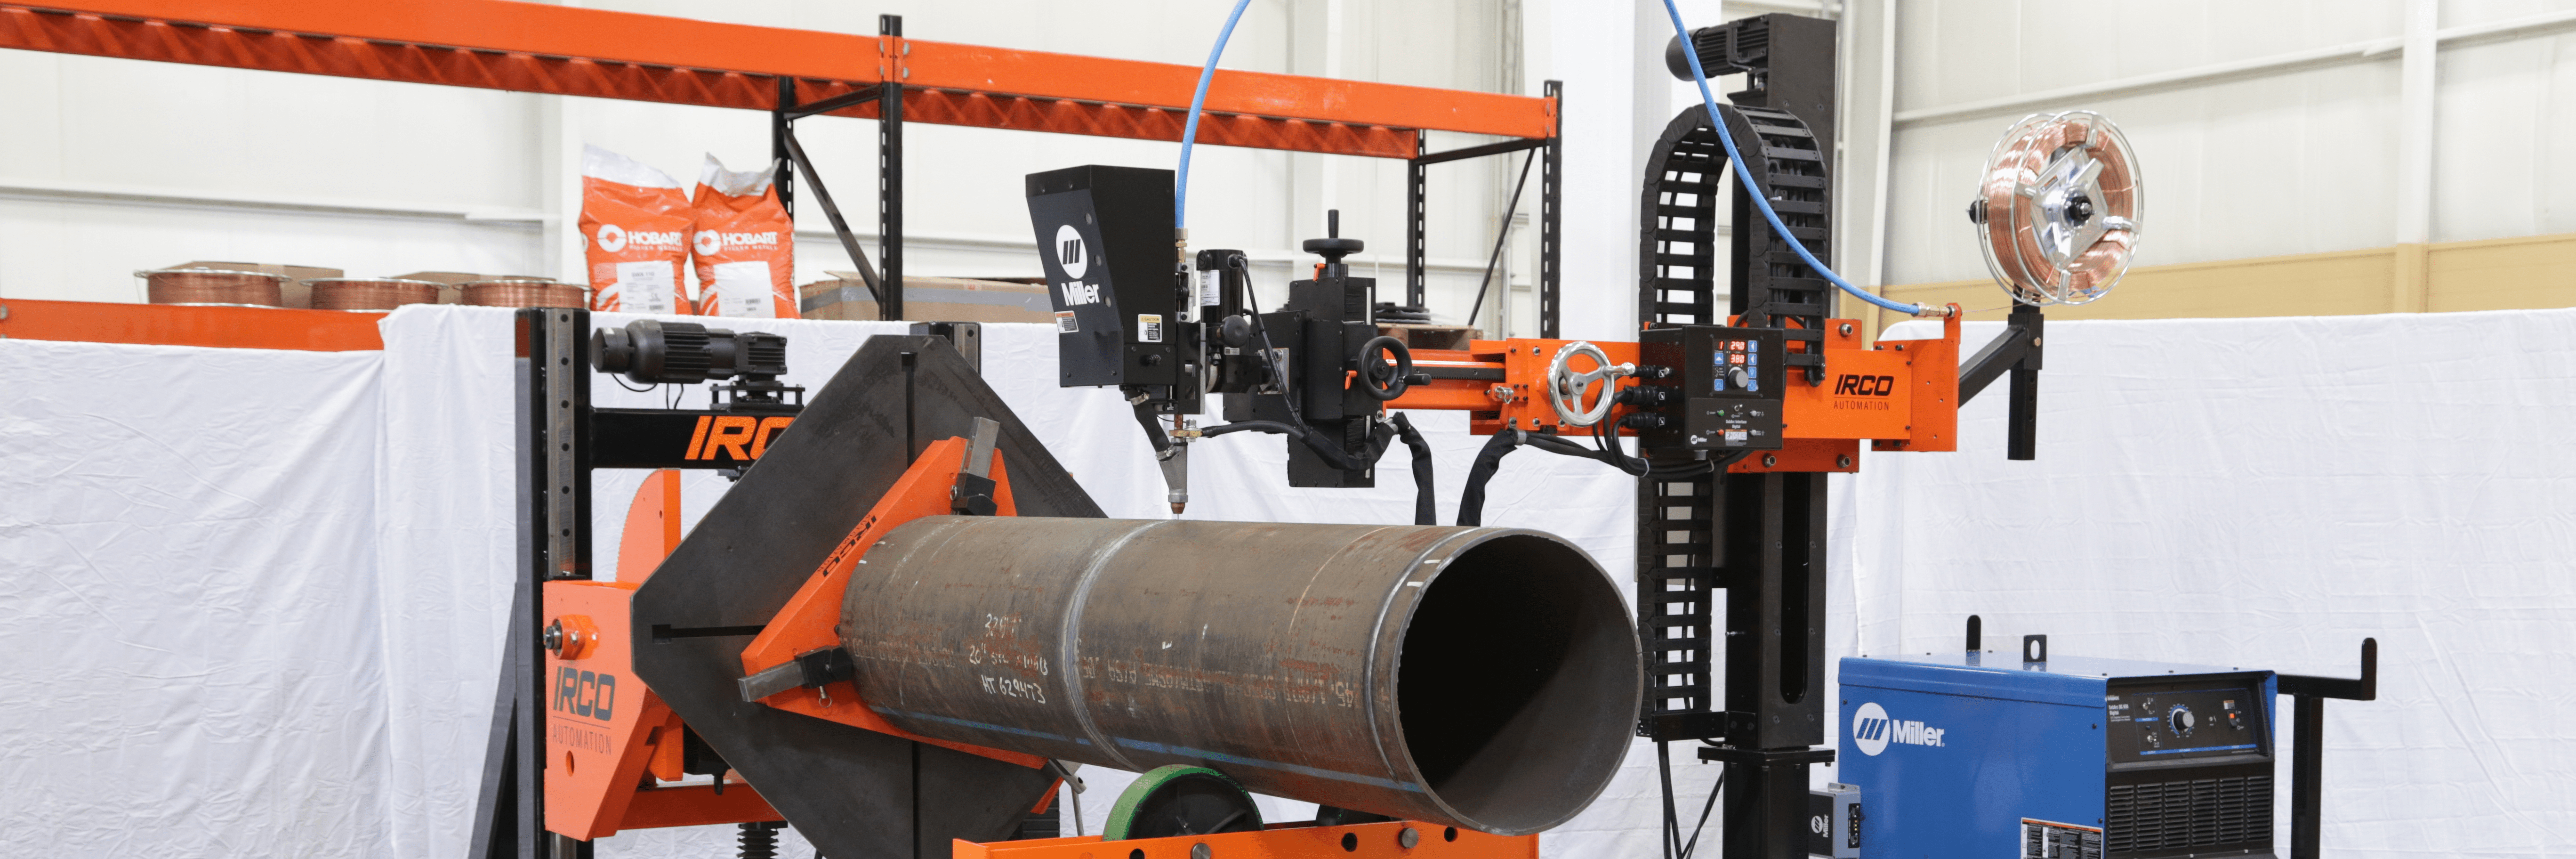 Pipe Spooling System